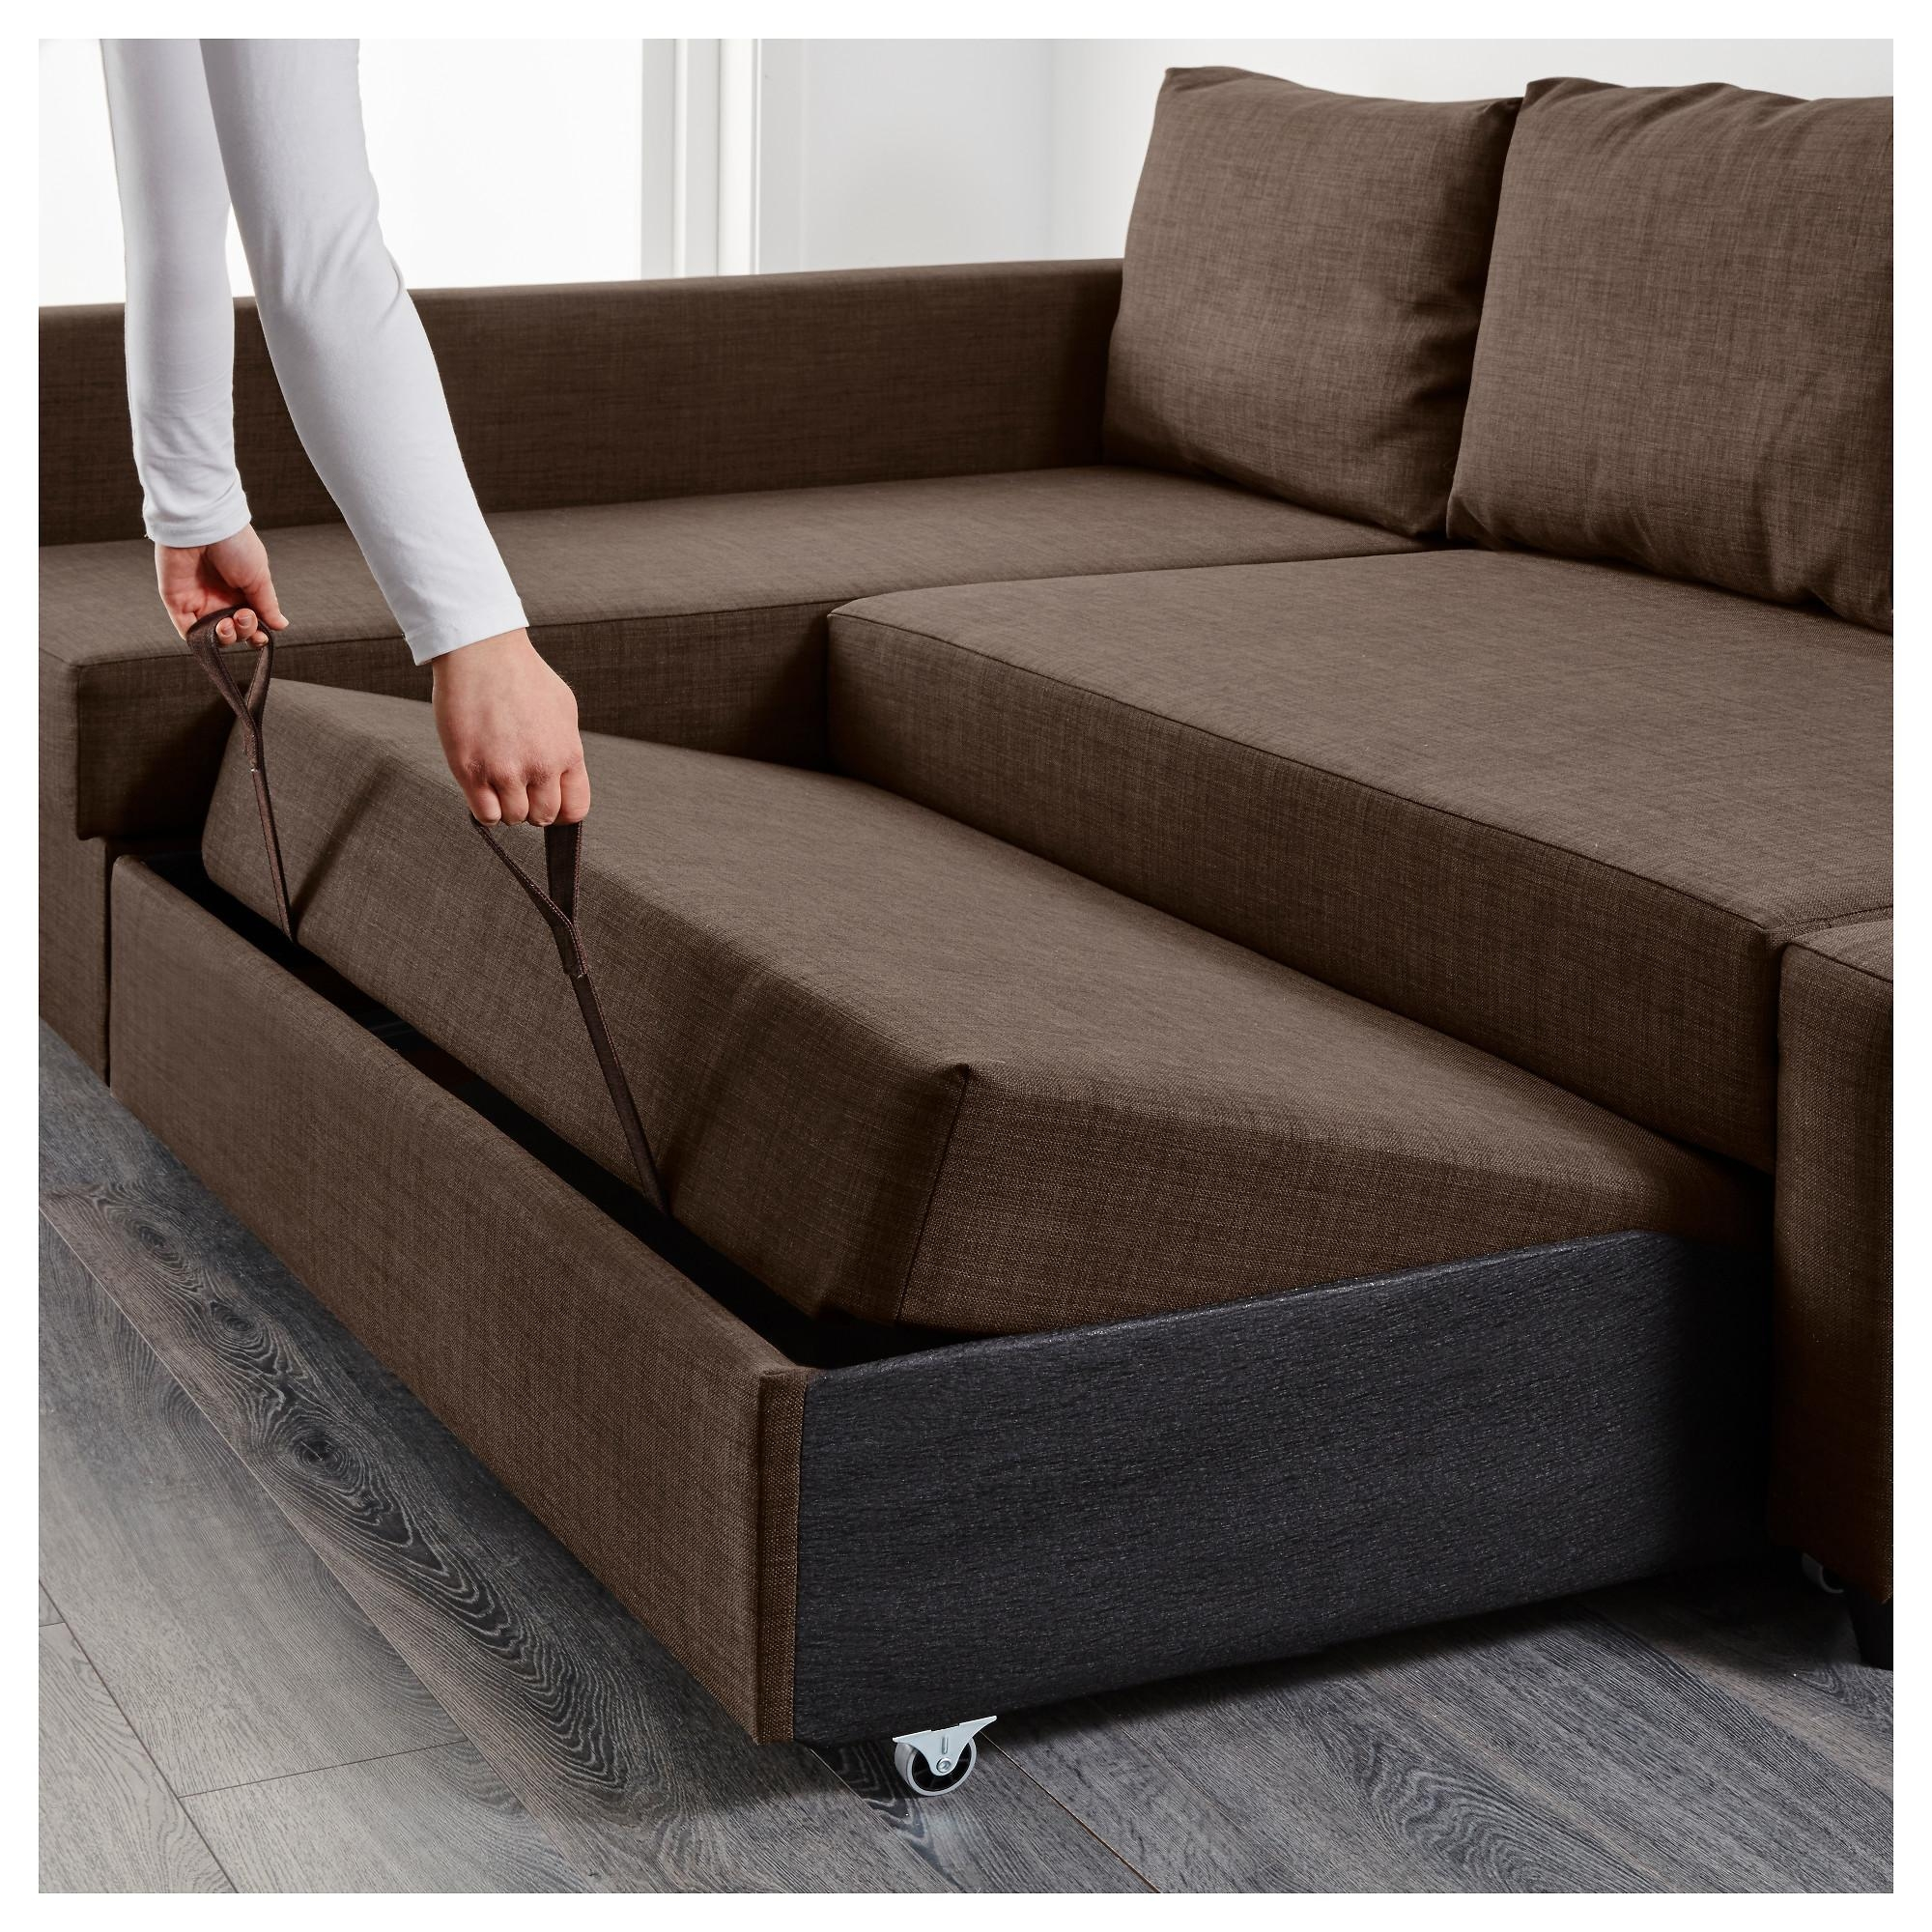 Furniture: Ikea Sofa Bed | Ikea Sofa Beds | Corner Sofa Bed Ikea Inside L Shaped Sofa Bed (Image 5 of 20)